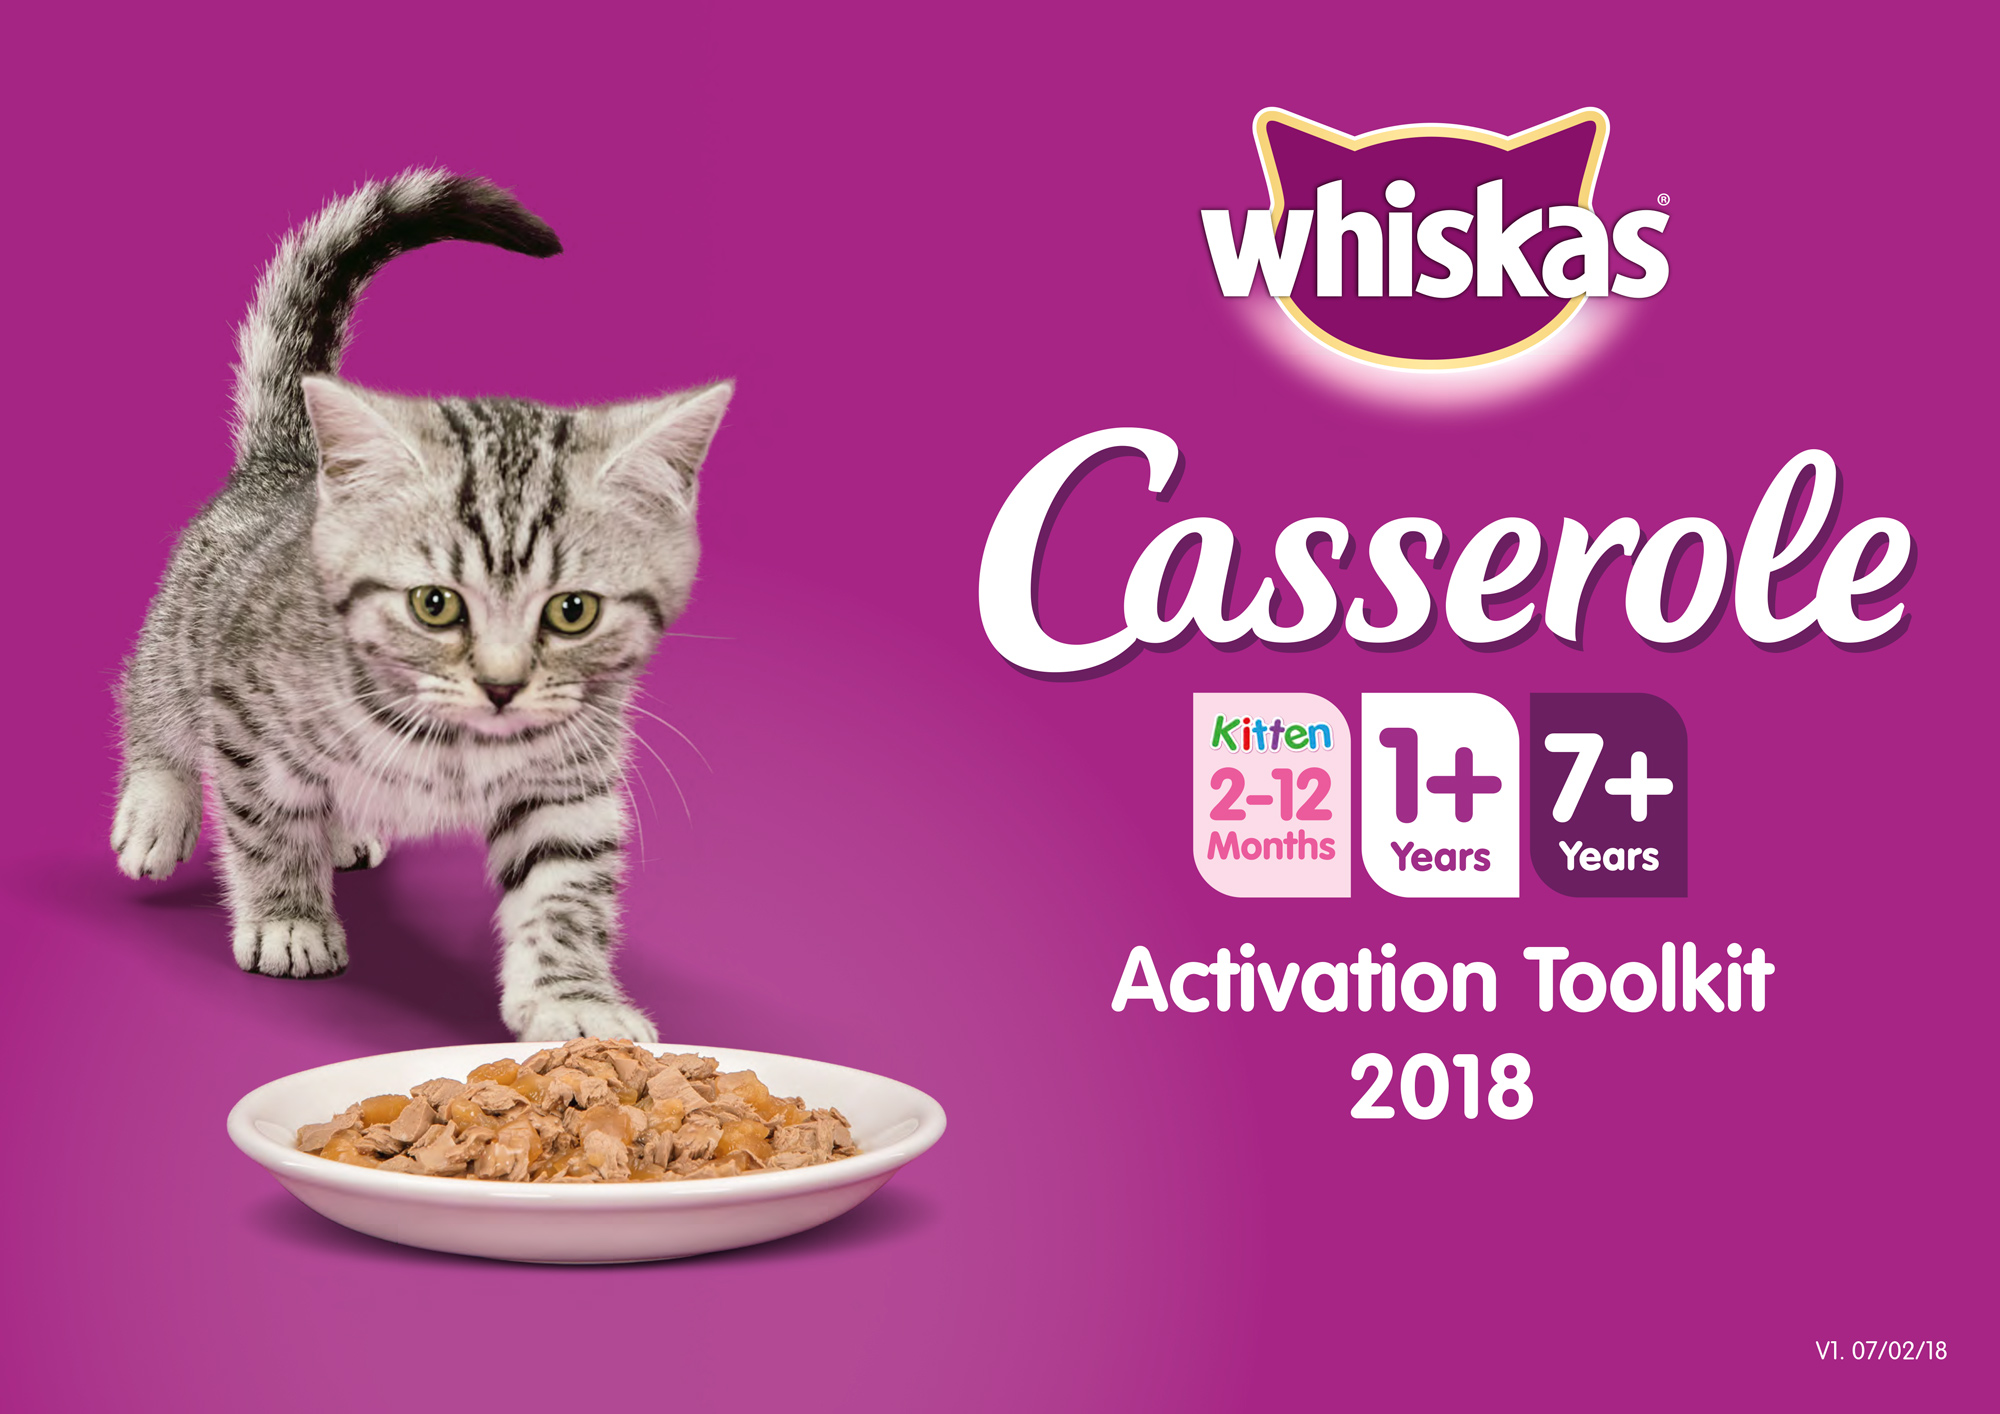 MP8948-Whiskas-All-Ages-Toolkit_LO-1.jpg